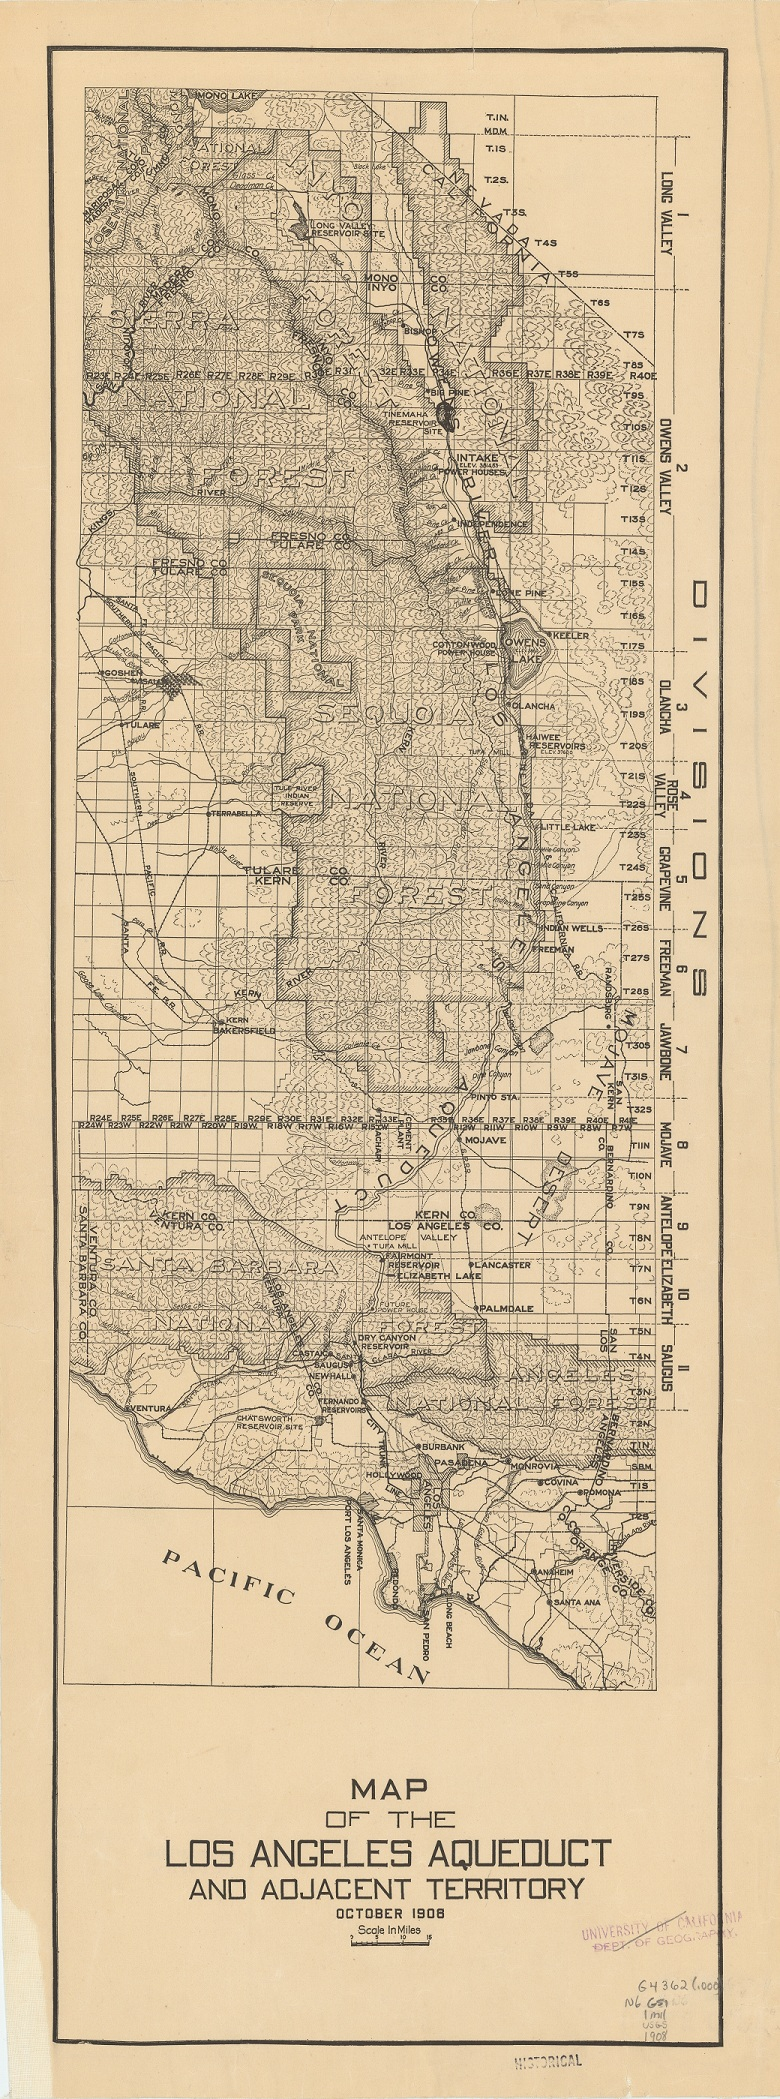 Map Of The Los Angeles Aqueduct And Adjacent Territory 1908